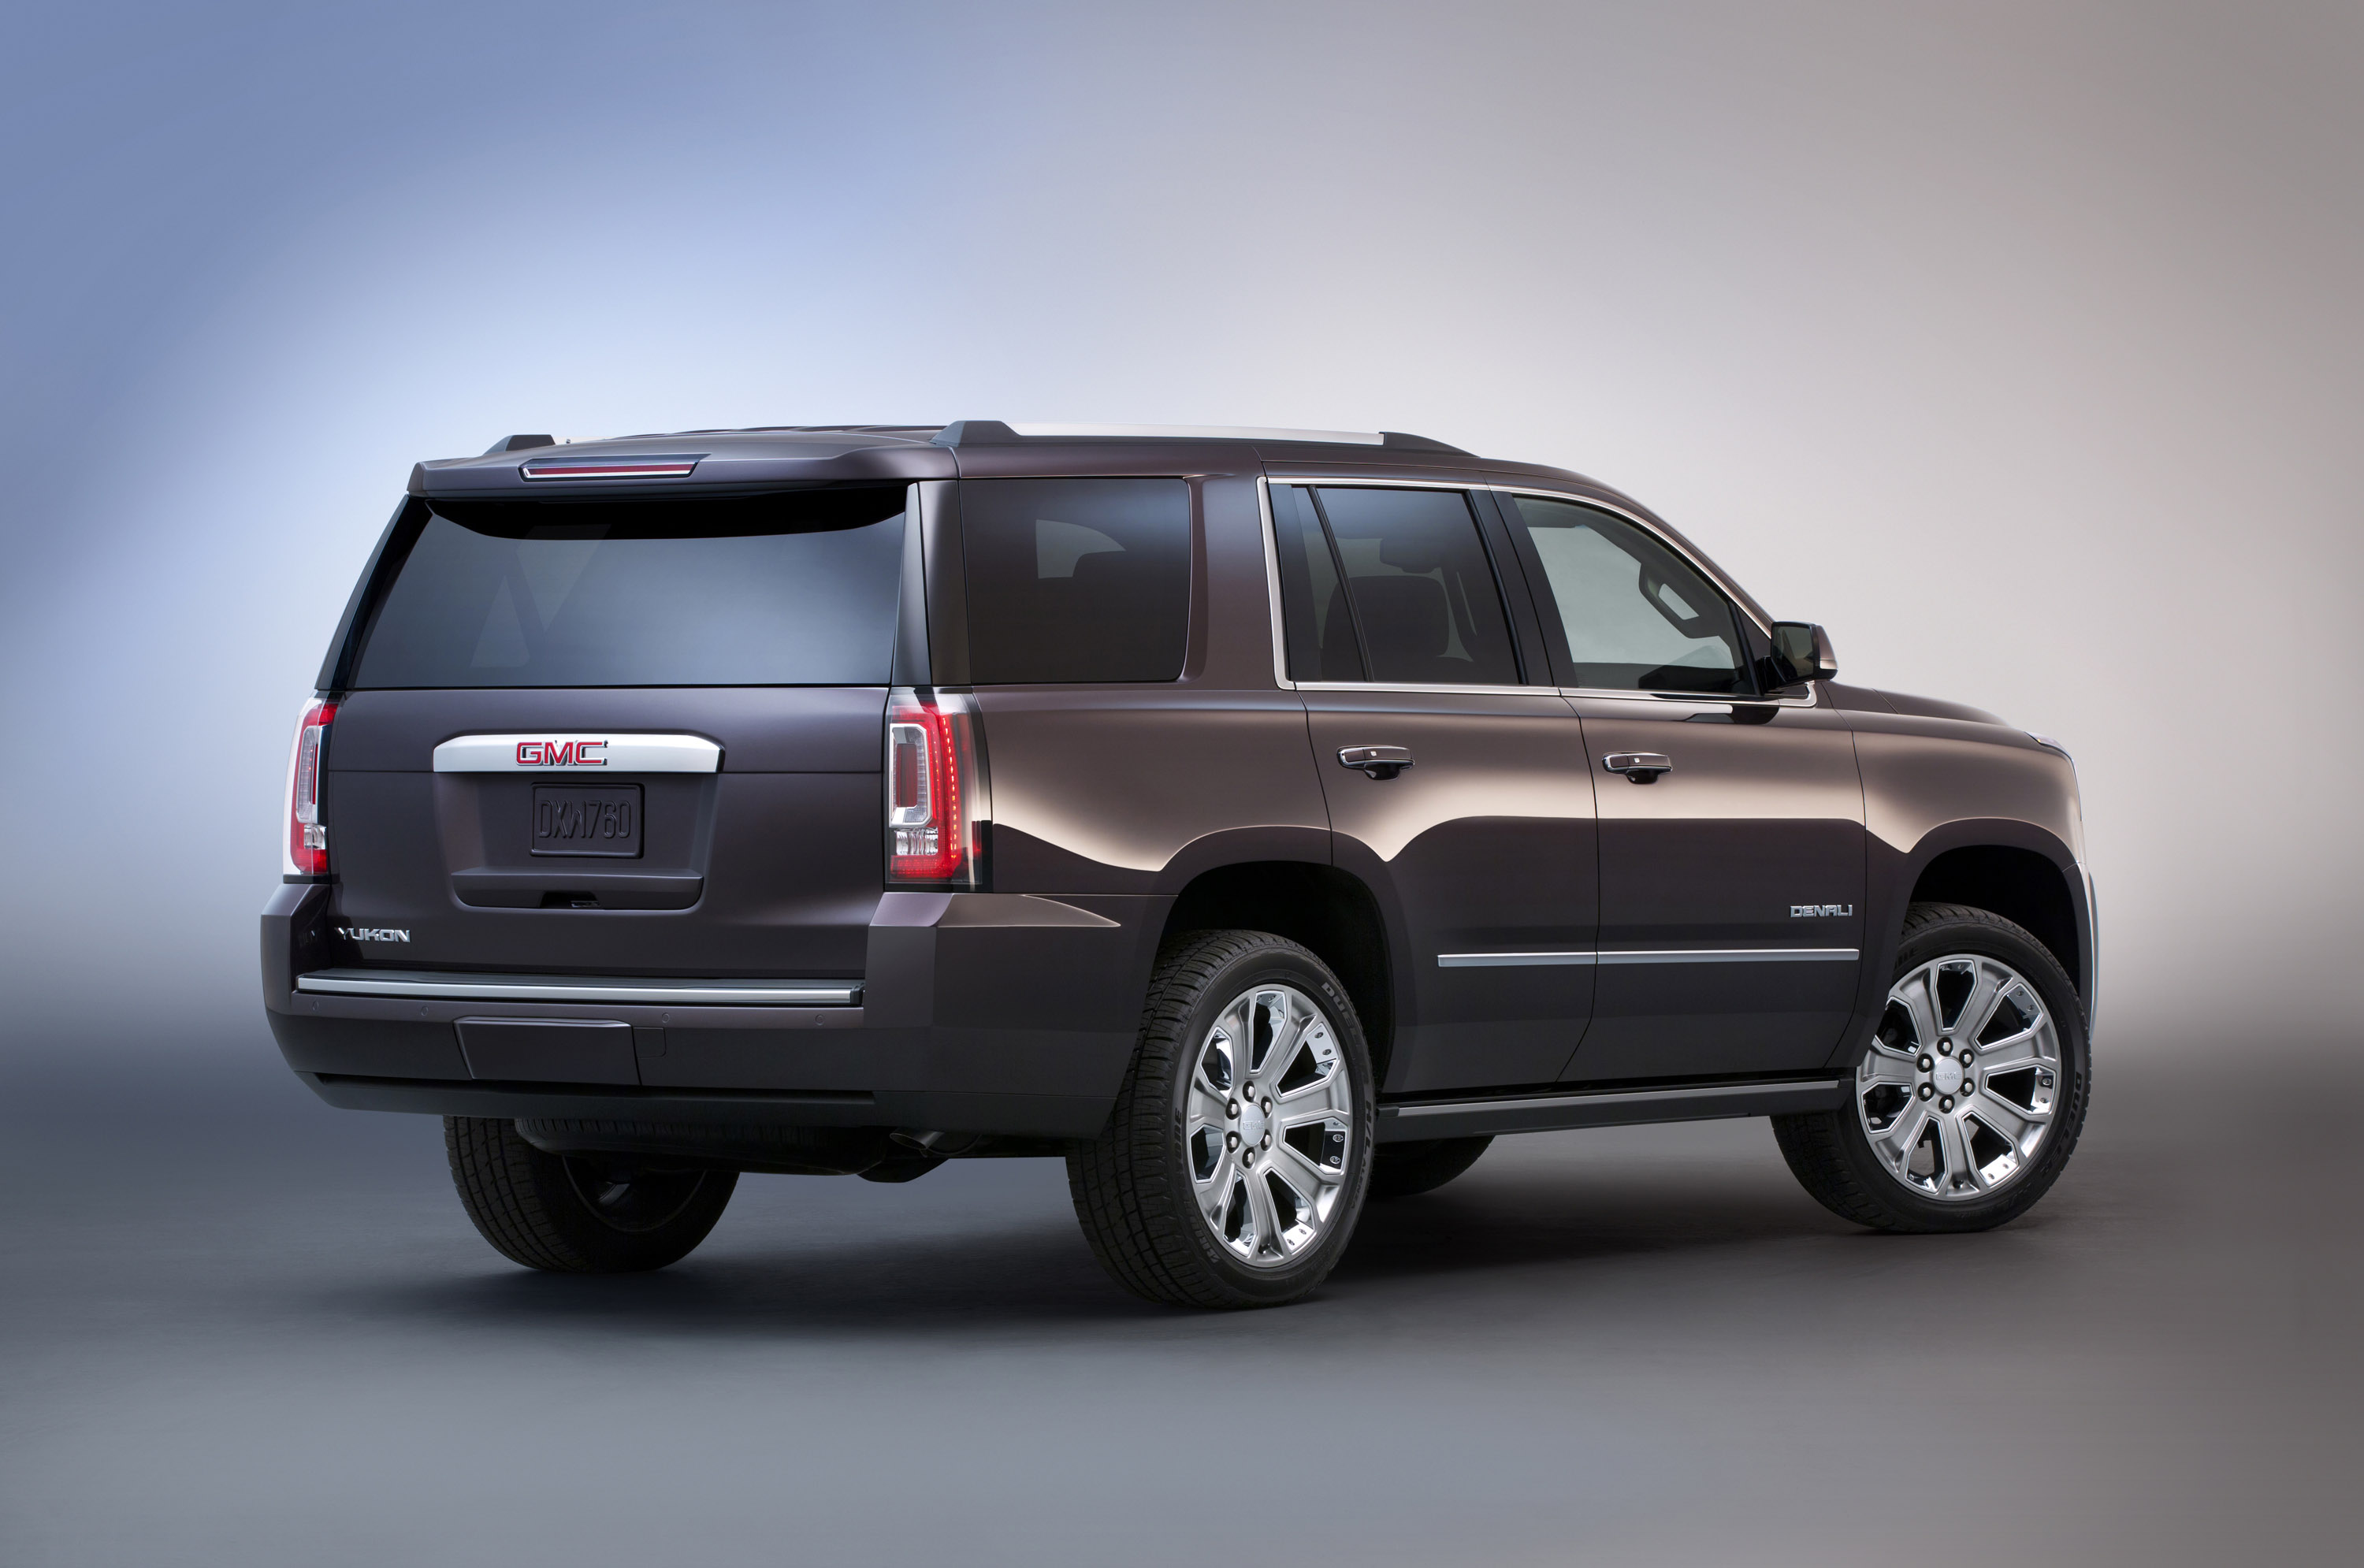 2015 gmc yukon denali. Black Bedroom Furniture Sets. Home Design Ideas